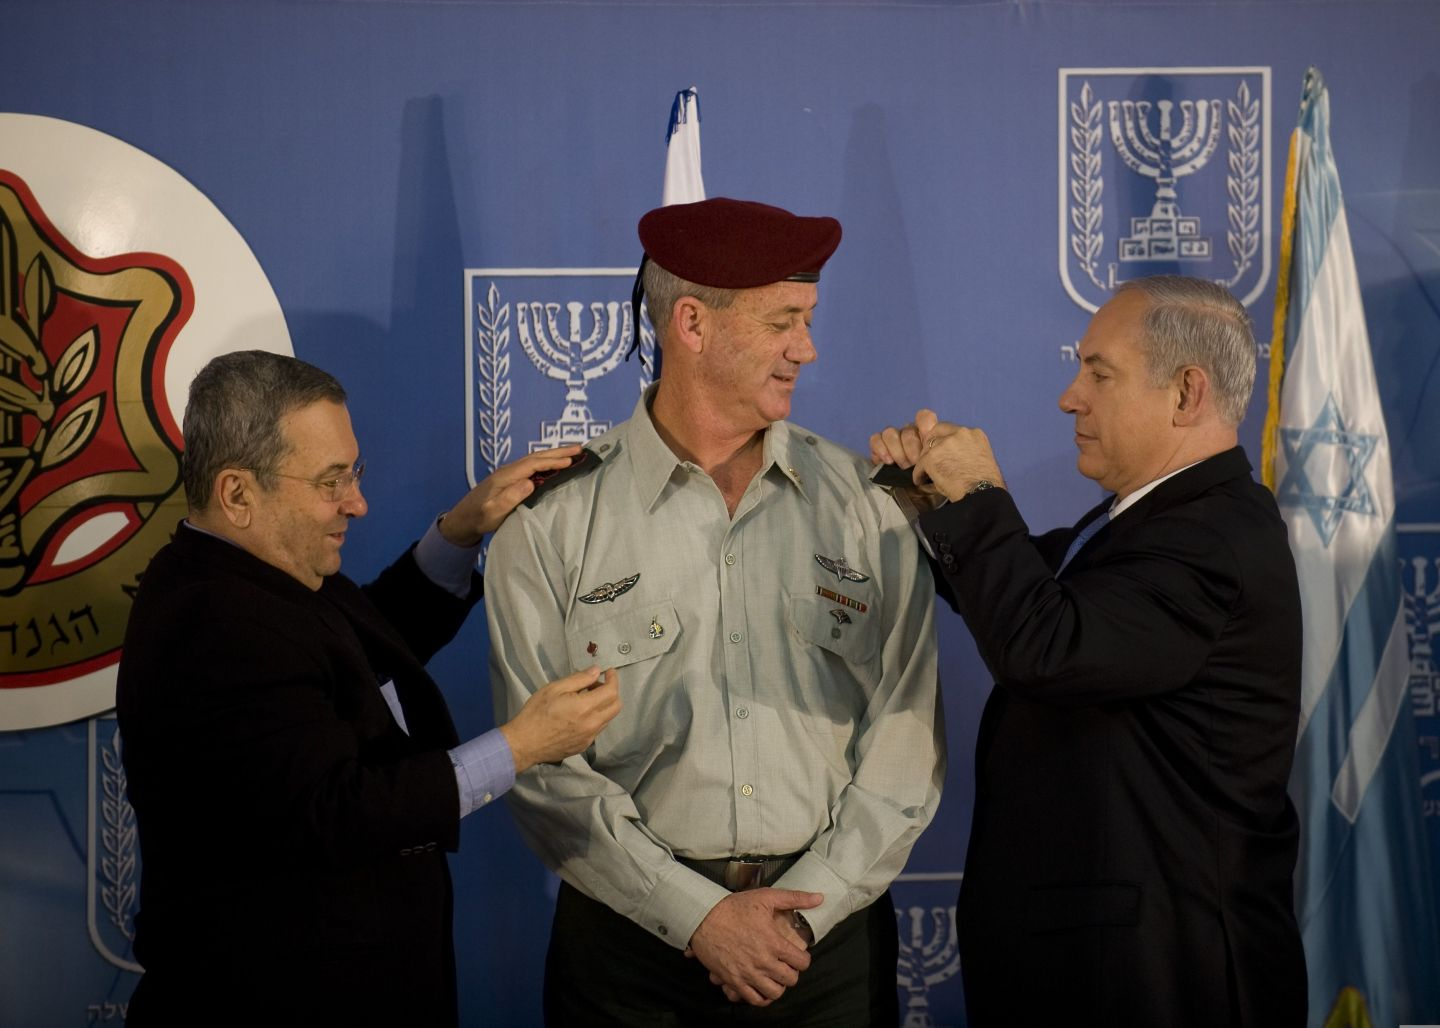 "Rav Aluf Binyamin ""Benny"" Gantz, the 20th Chief of General Staff of the Israel Defense Forces, receiving rav-aluf (Lt. General) rank from the Defense minister Ehud Barak and the Prime minister Binyamin Netanyahu"